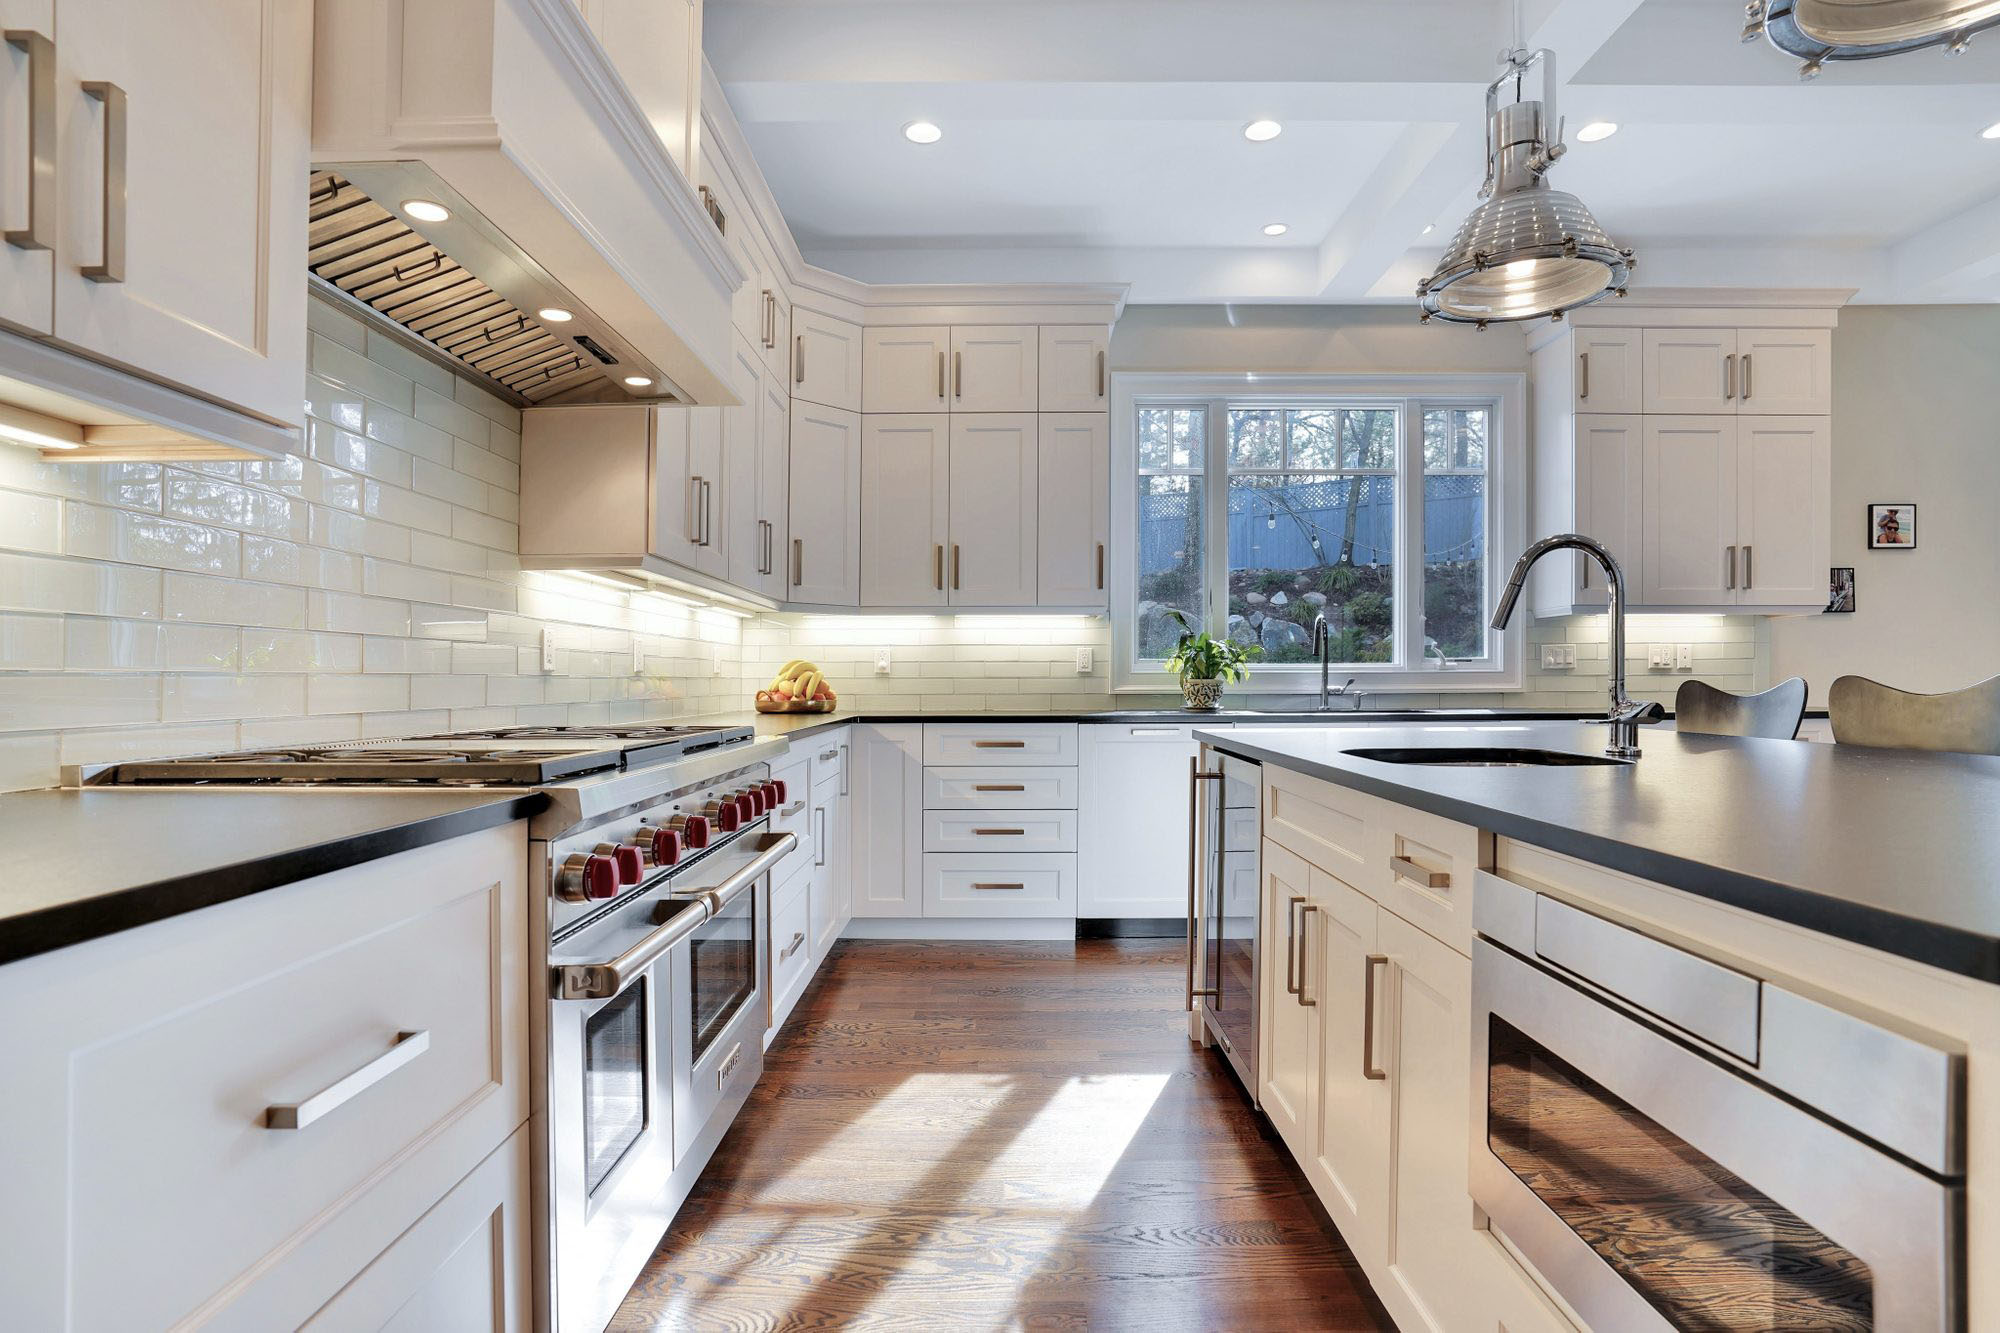 White shaker style kitchen cabinets with white subway tile backsplash and gray countertops.